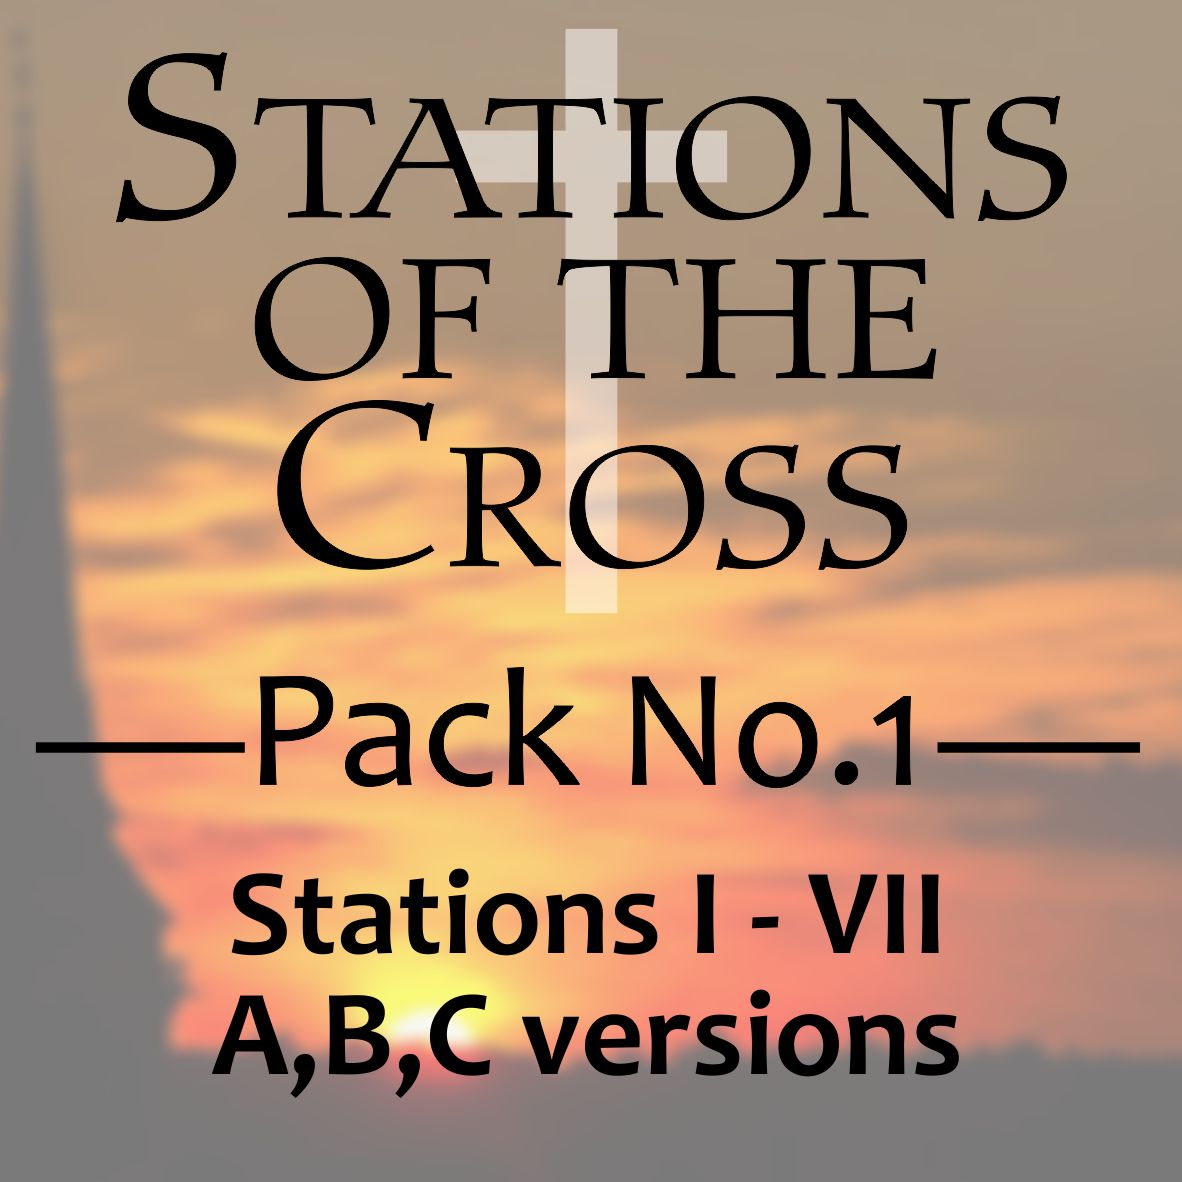 Stations of the Cross - I-VII